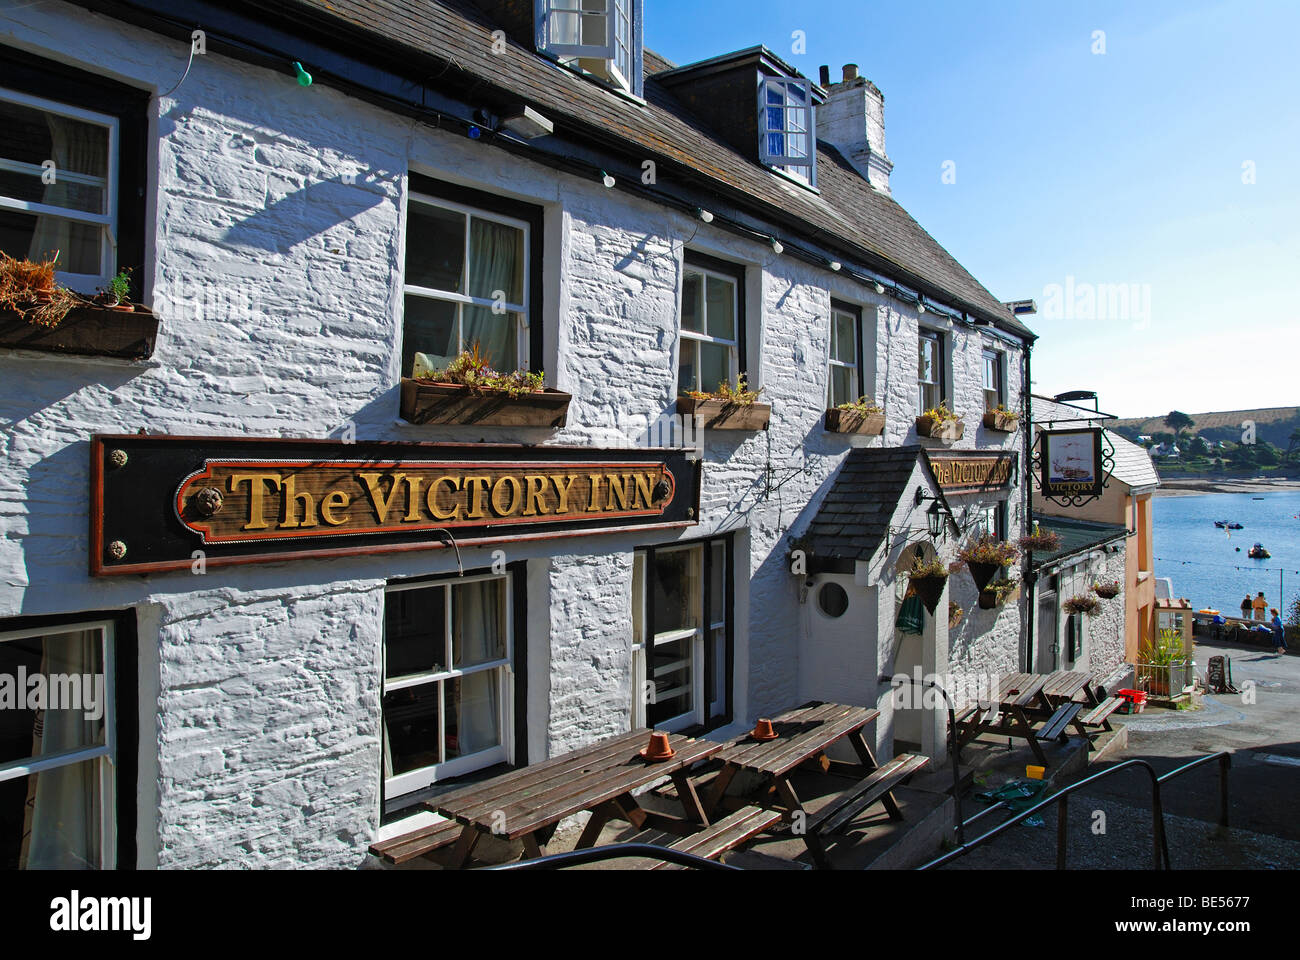 La victoire The Inn at st mawes.à Cornwall, uk Photo Stock